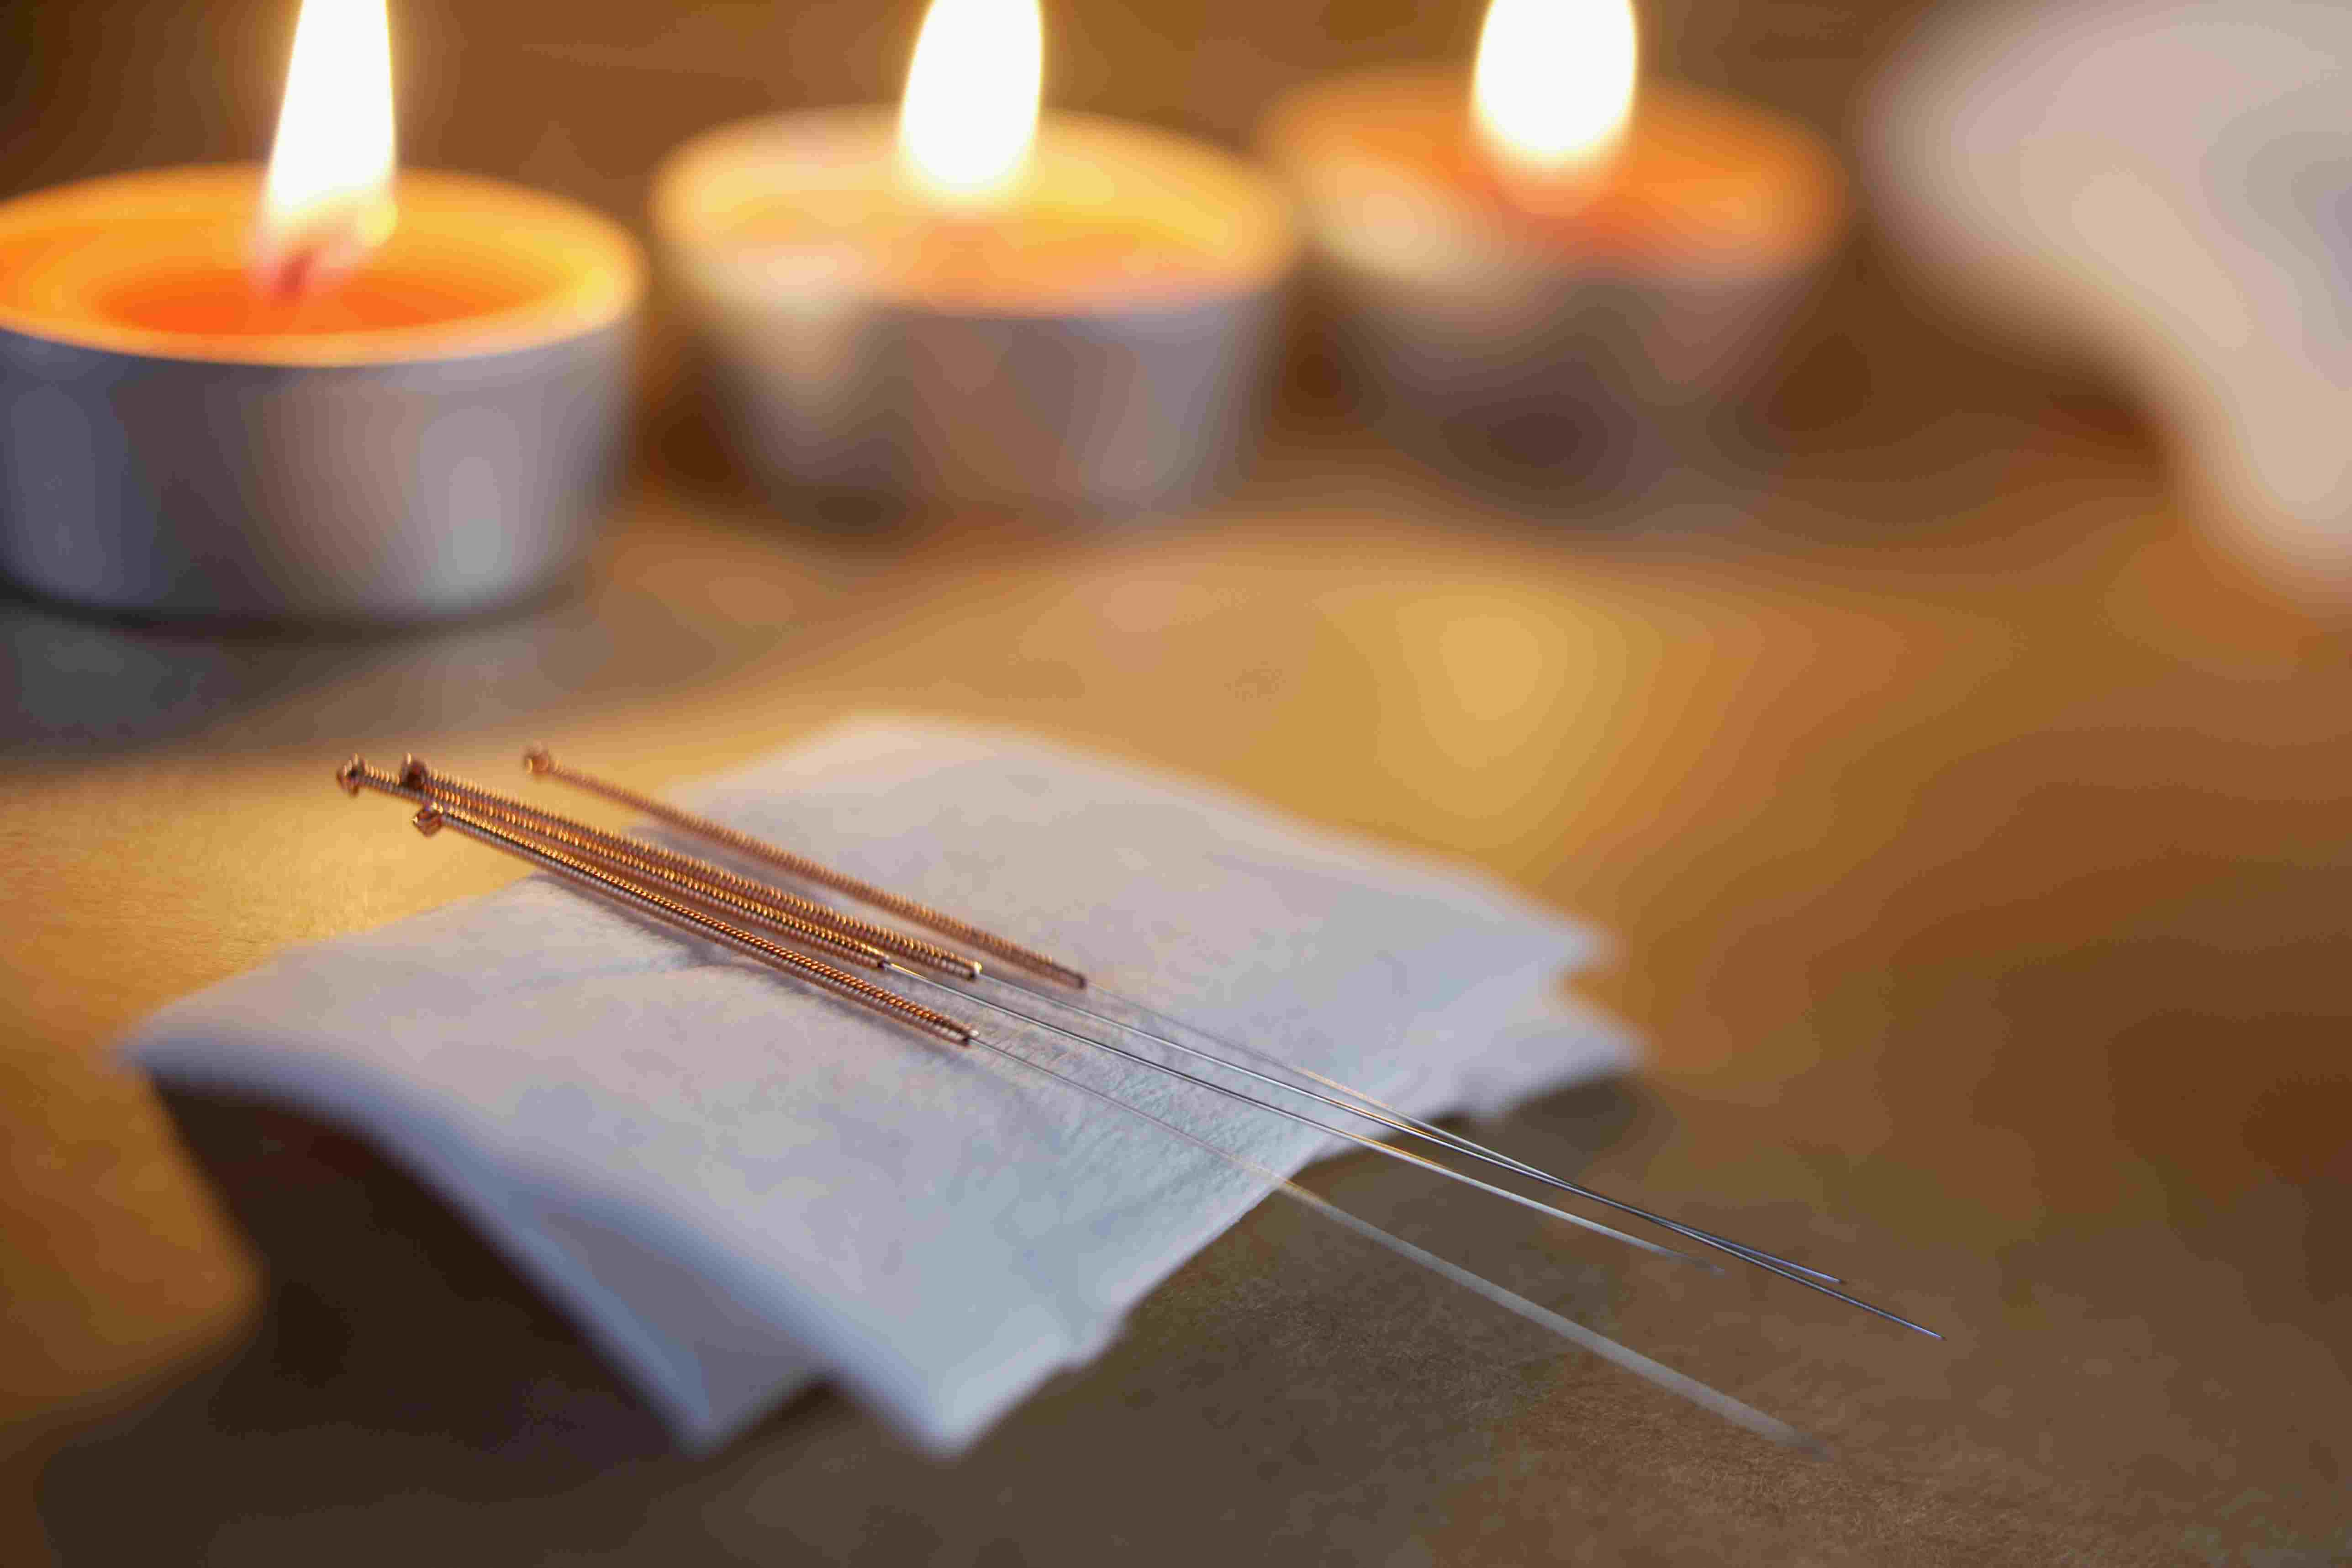 Acupuncture Needles and Tealights